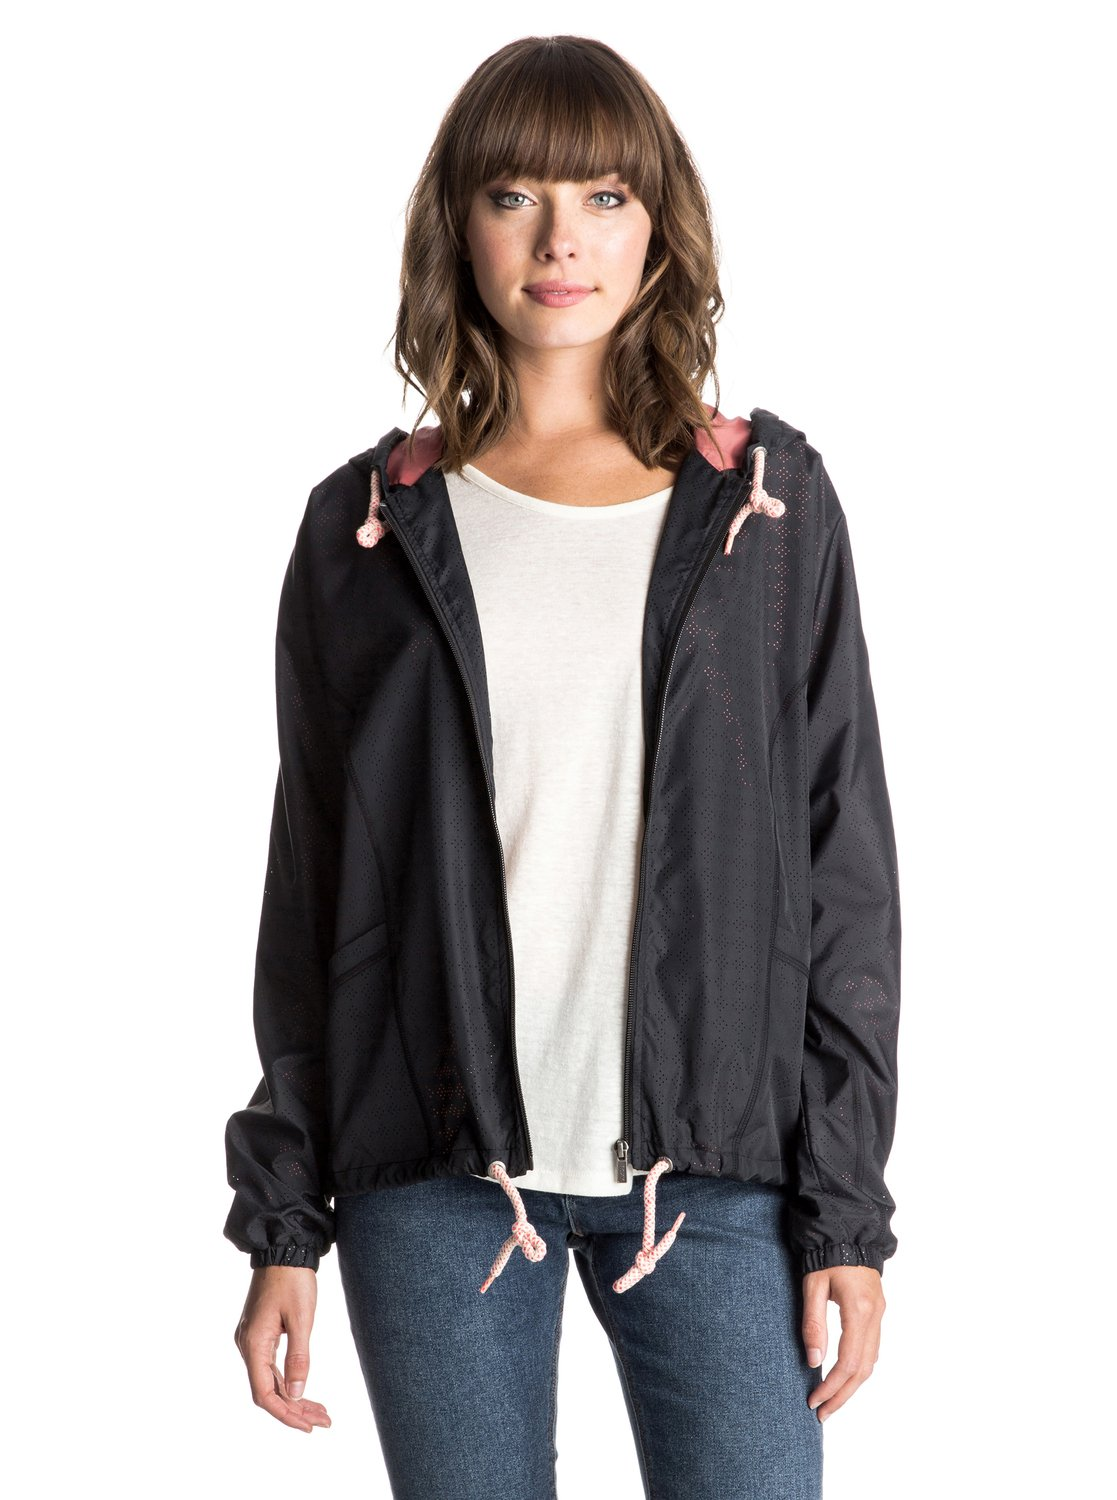 Dream The Dream - Chaqueta para mujer Roxy